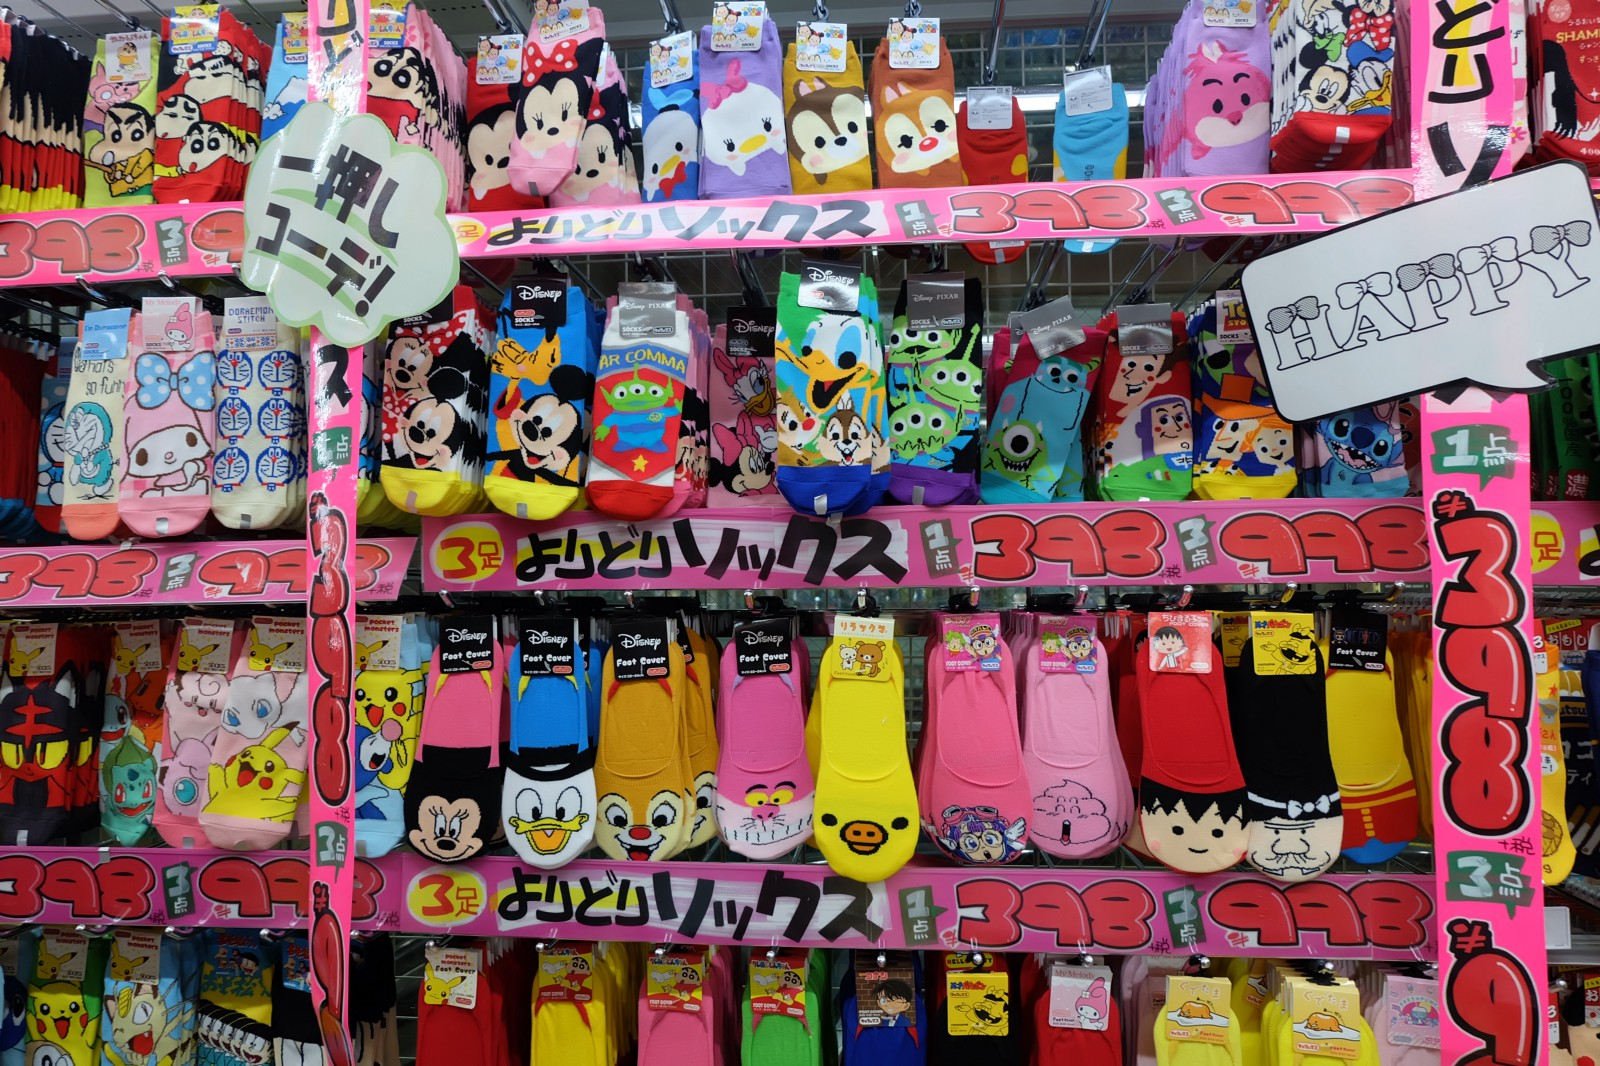 Cute and inexpensive character socks